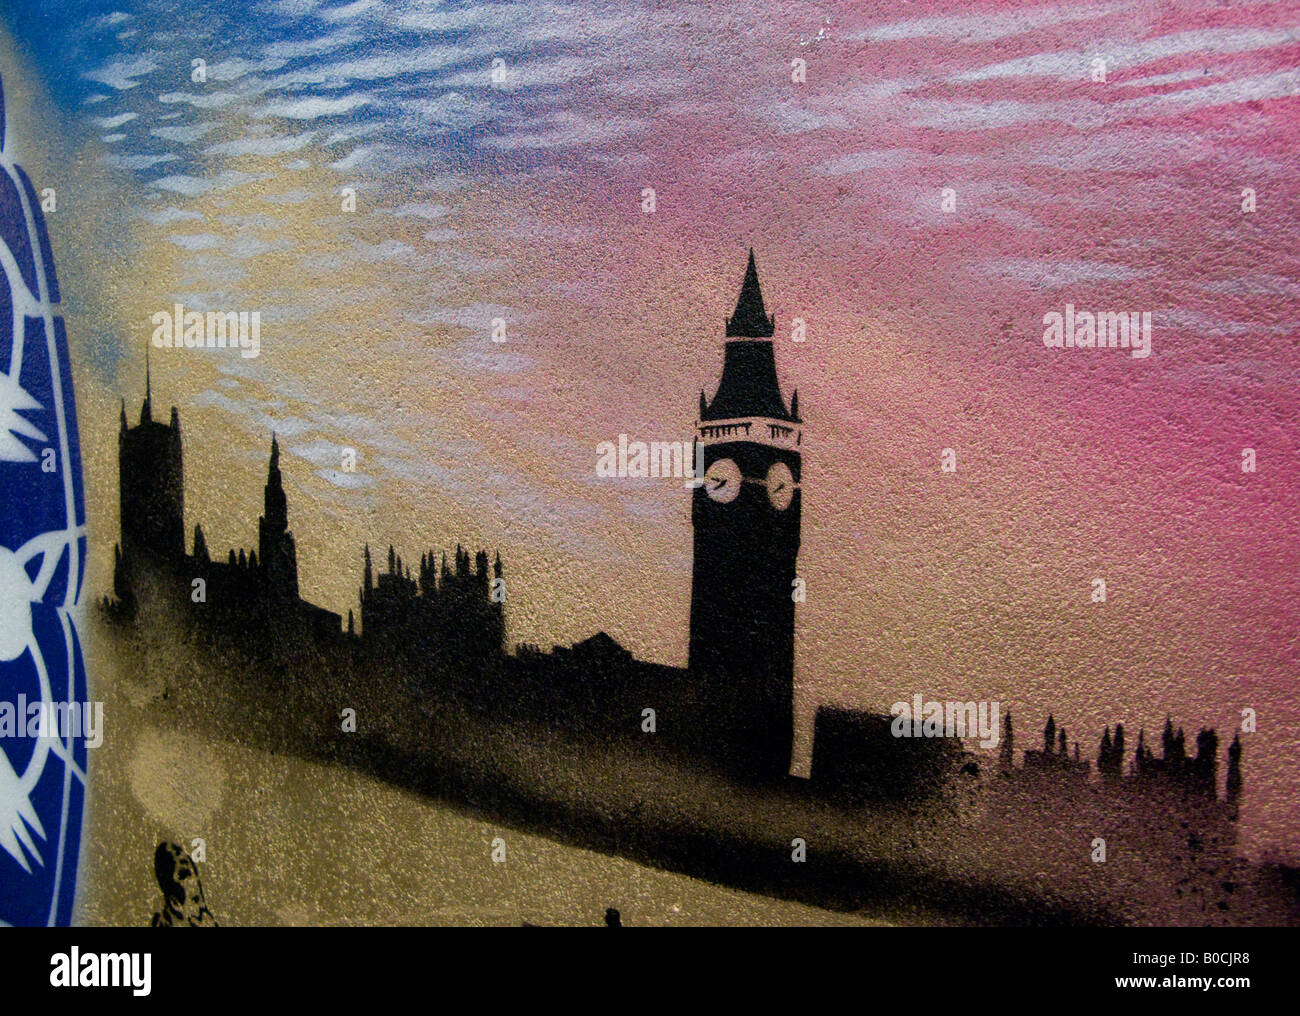 Houses of Parliament graffiti style - an image from The Cans Festival, a London street exhibition Banksy helped - Stock Image